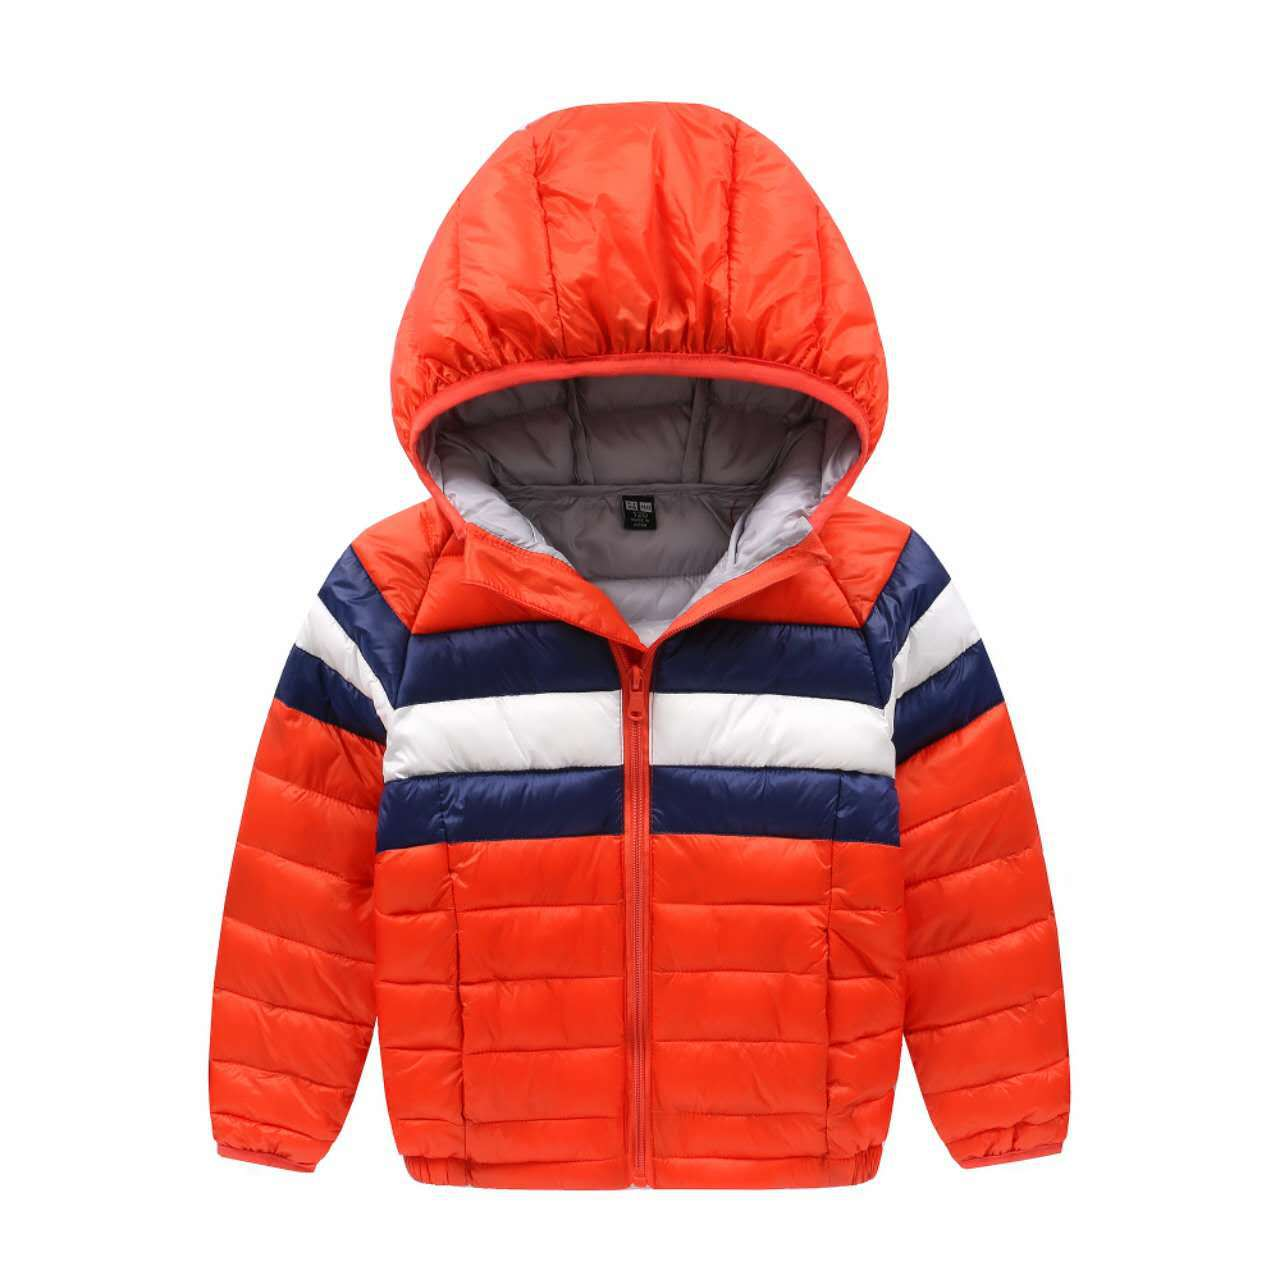 New Kids Winter Duck Down Children Winter Jackets For Boy Warm Hooded Jackets For Boys Jacket Children Winter Clothing Boys Coat winter down jacket for girls boy coat children s down jackets for boys winter jackets kids outerwears